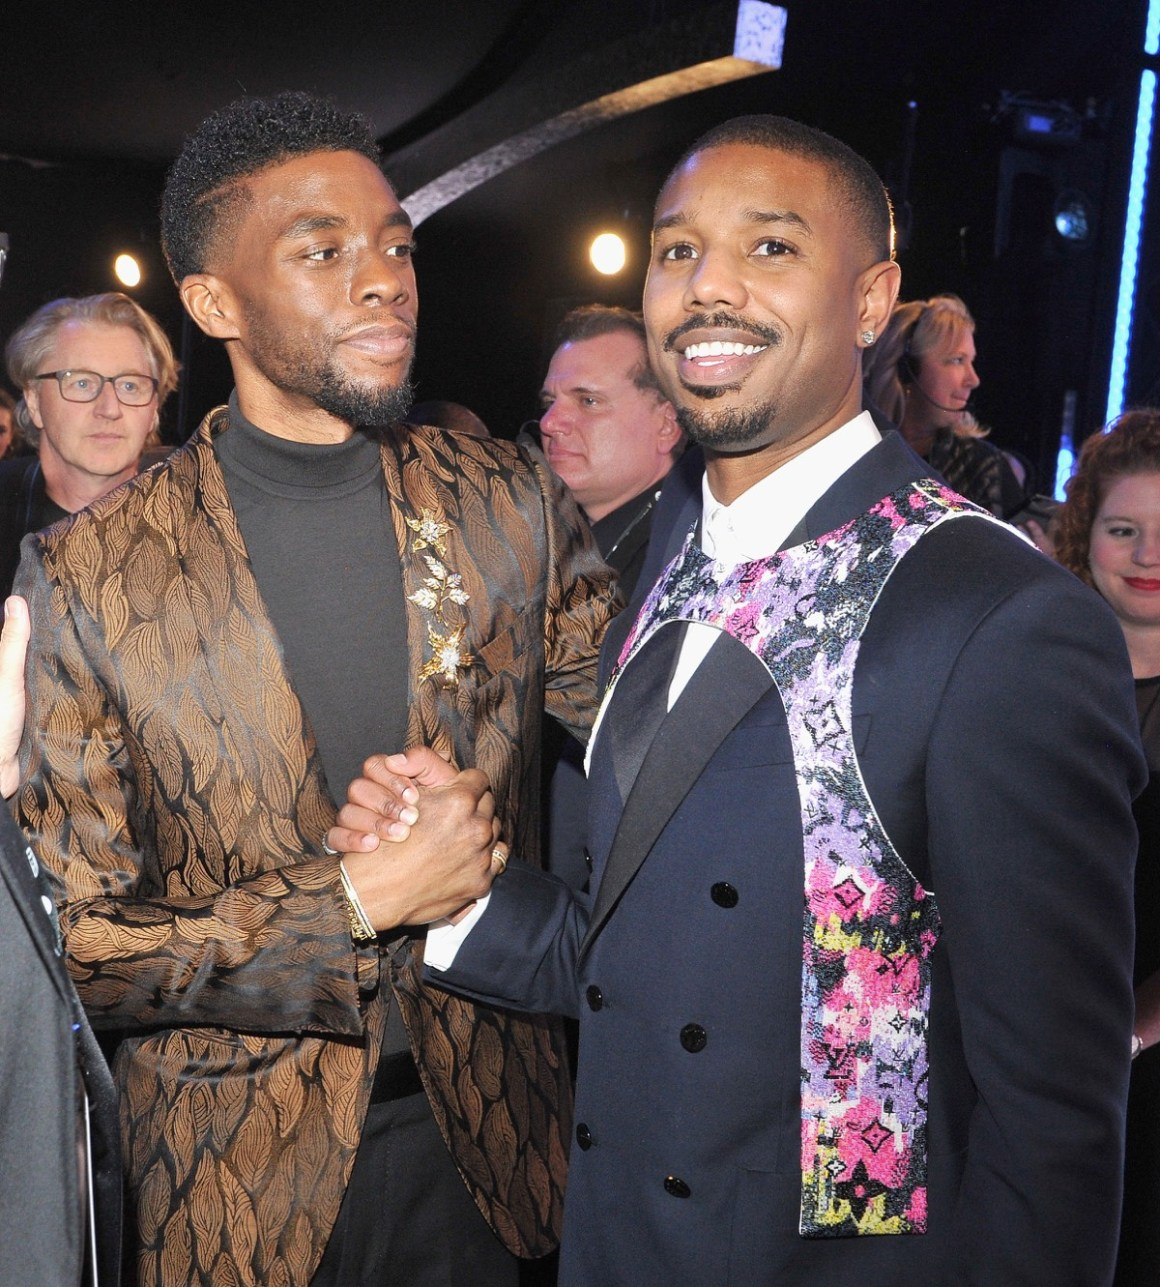 Chadwick Boseman and Michael B. Jordan 25th Annual Screen Actors Guild Awards - Cocktails